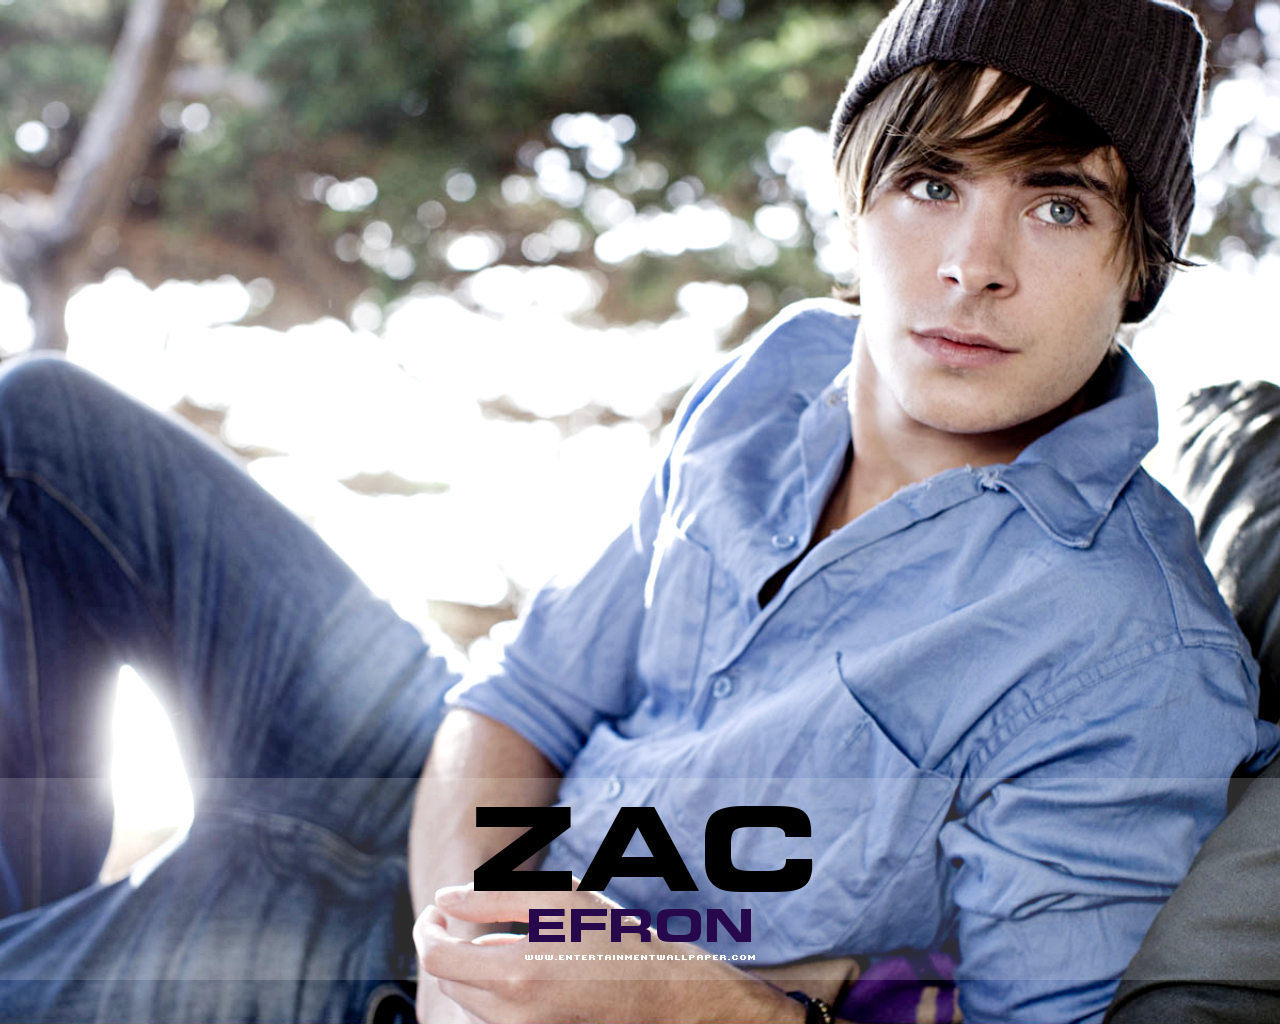 zac efron wallpaper blue